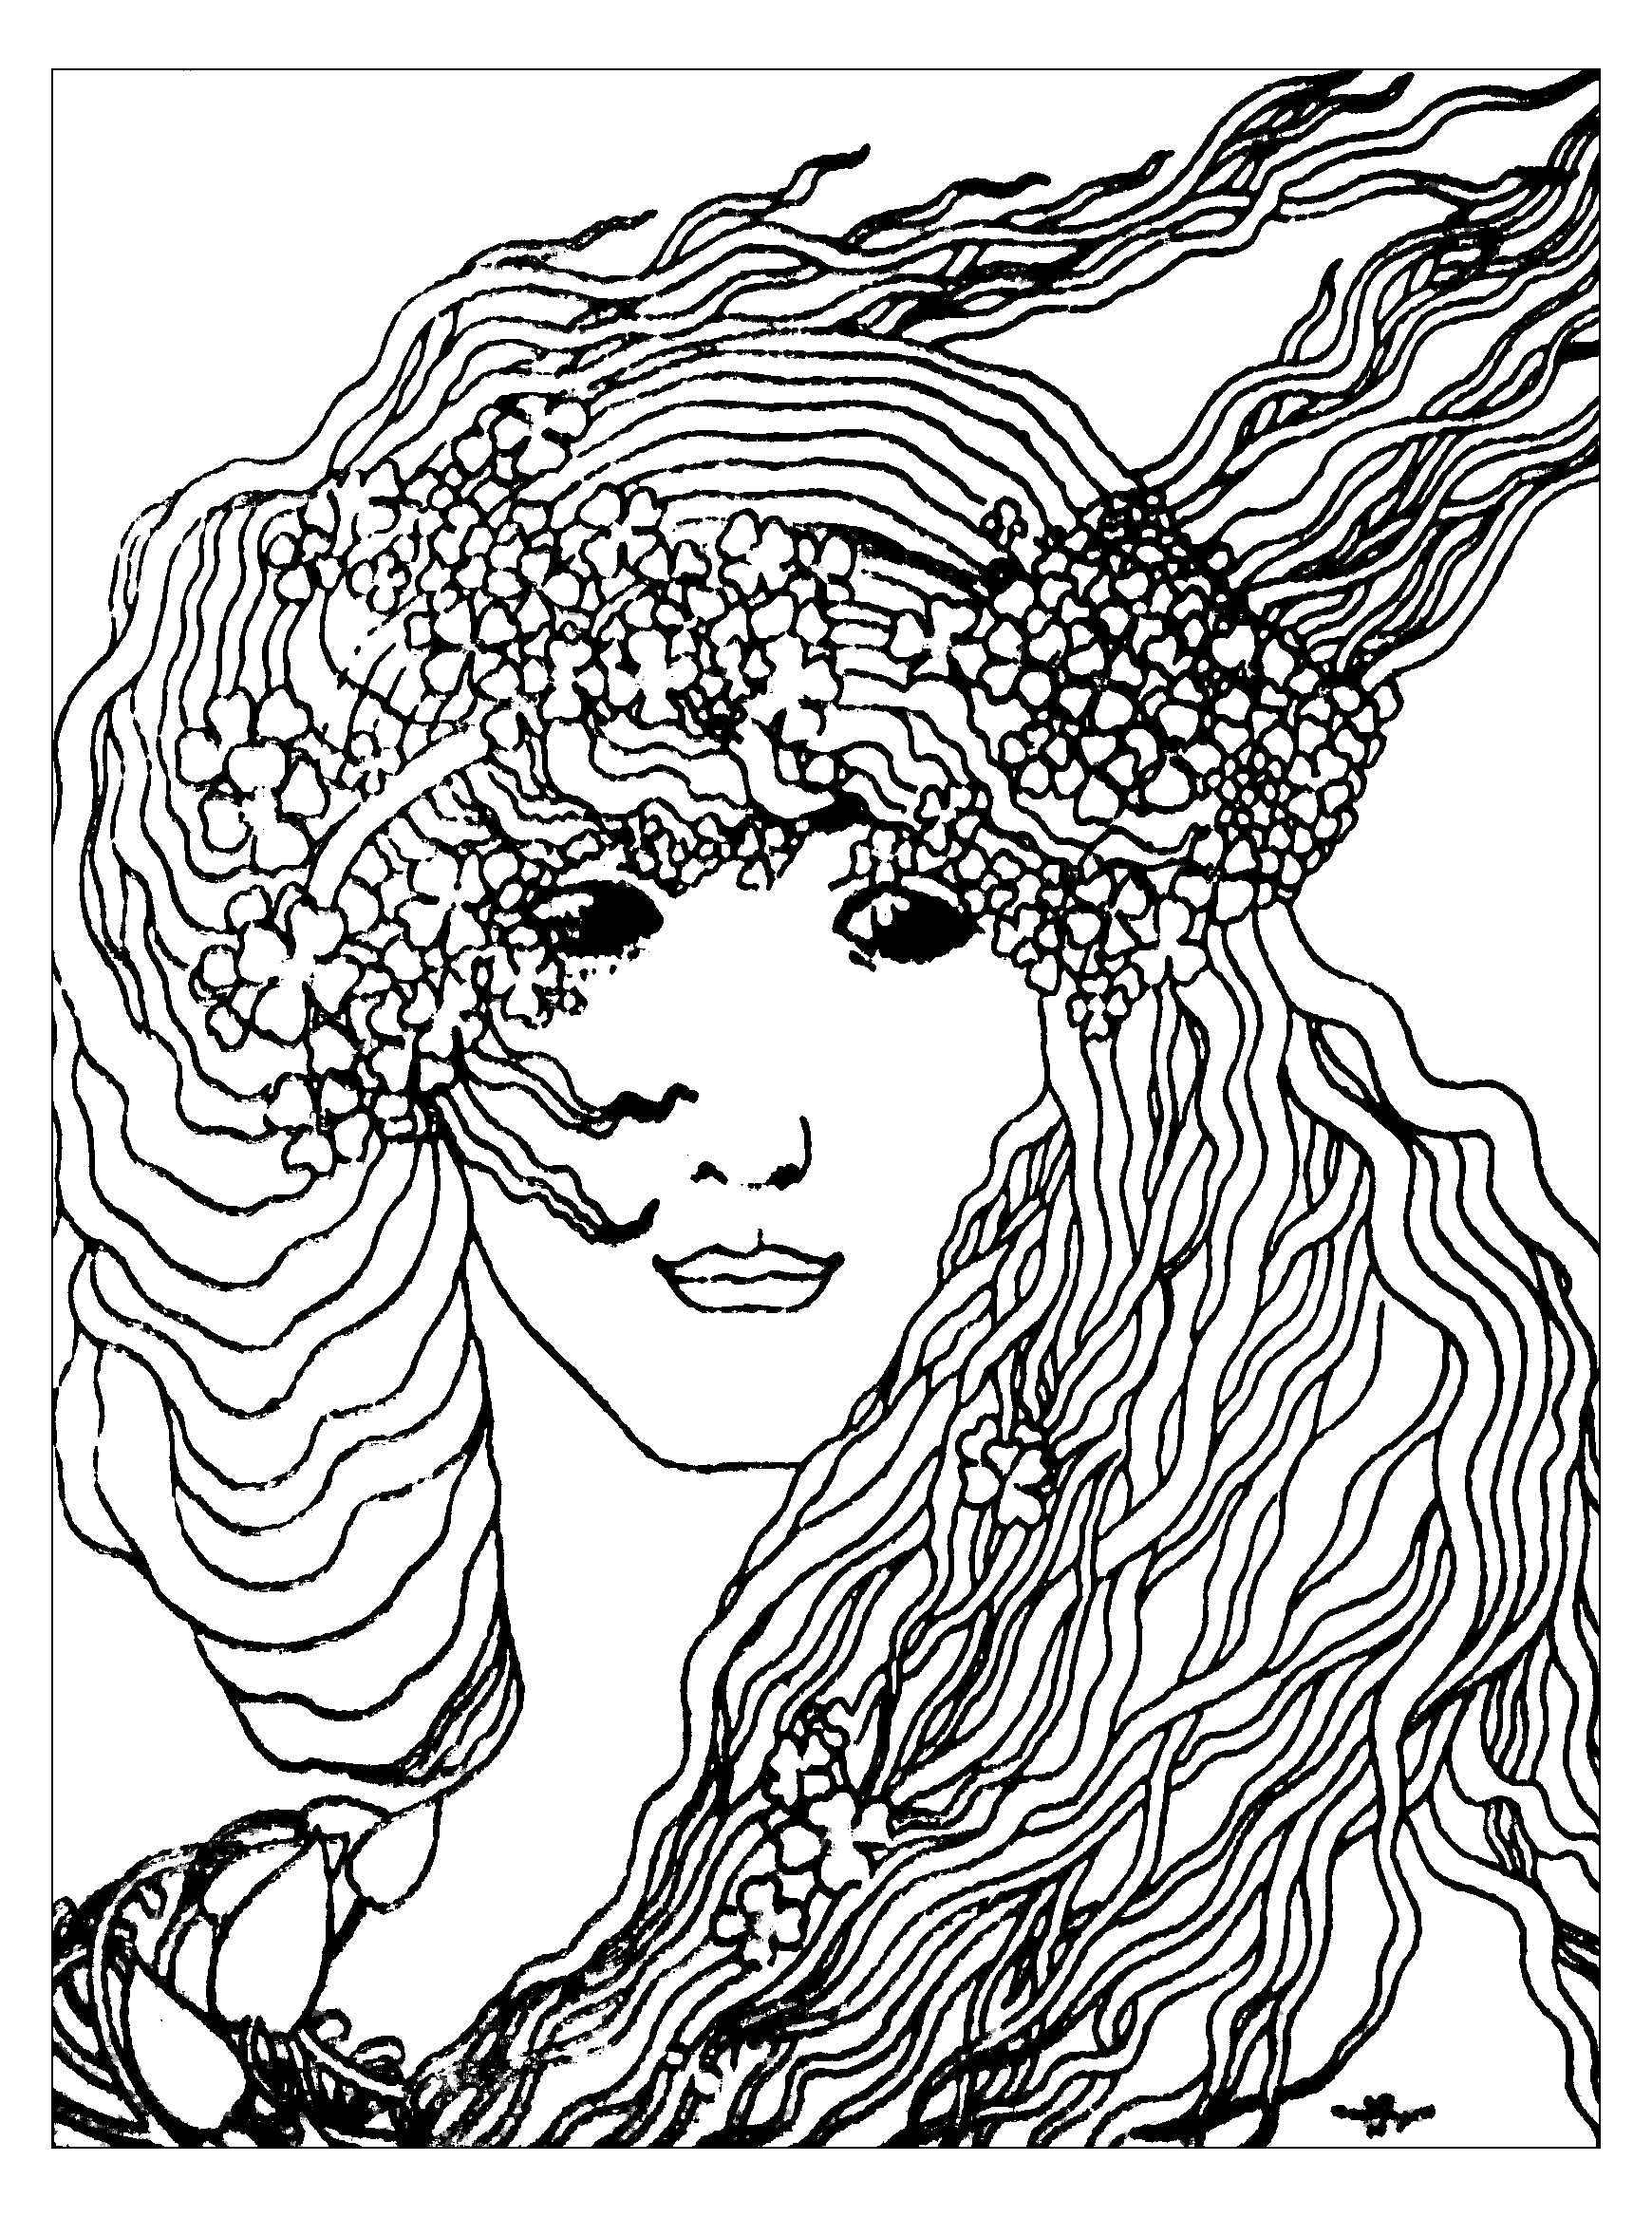 art nouveau from climax by aubrey vincent beardsley 1893